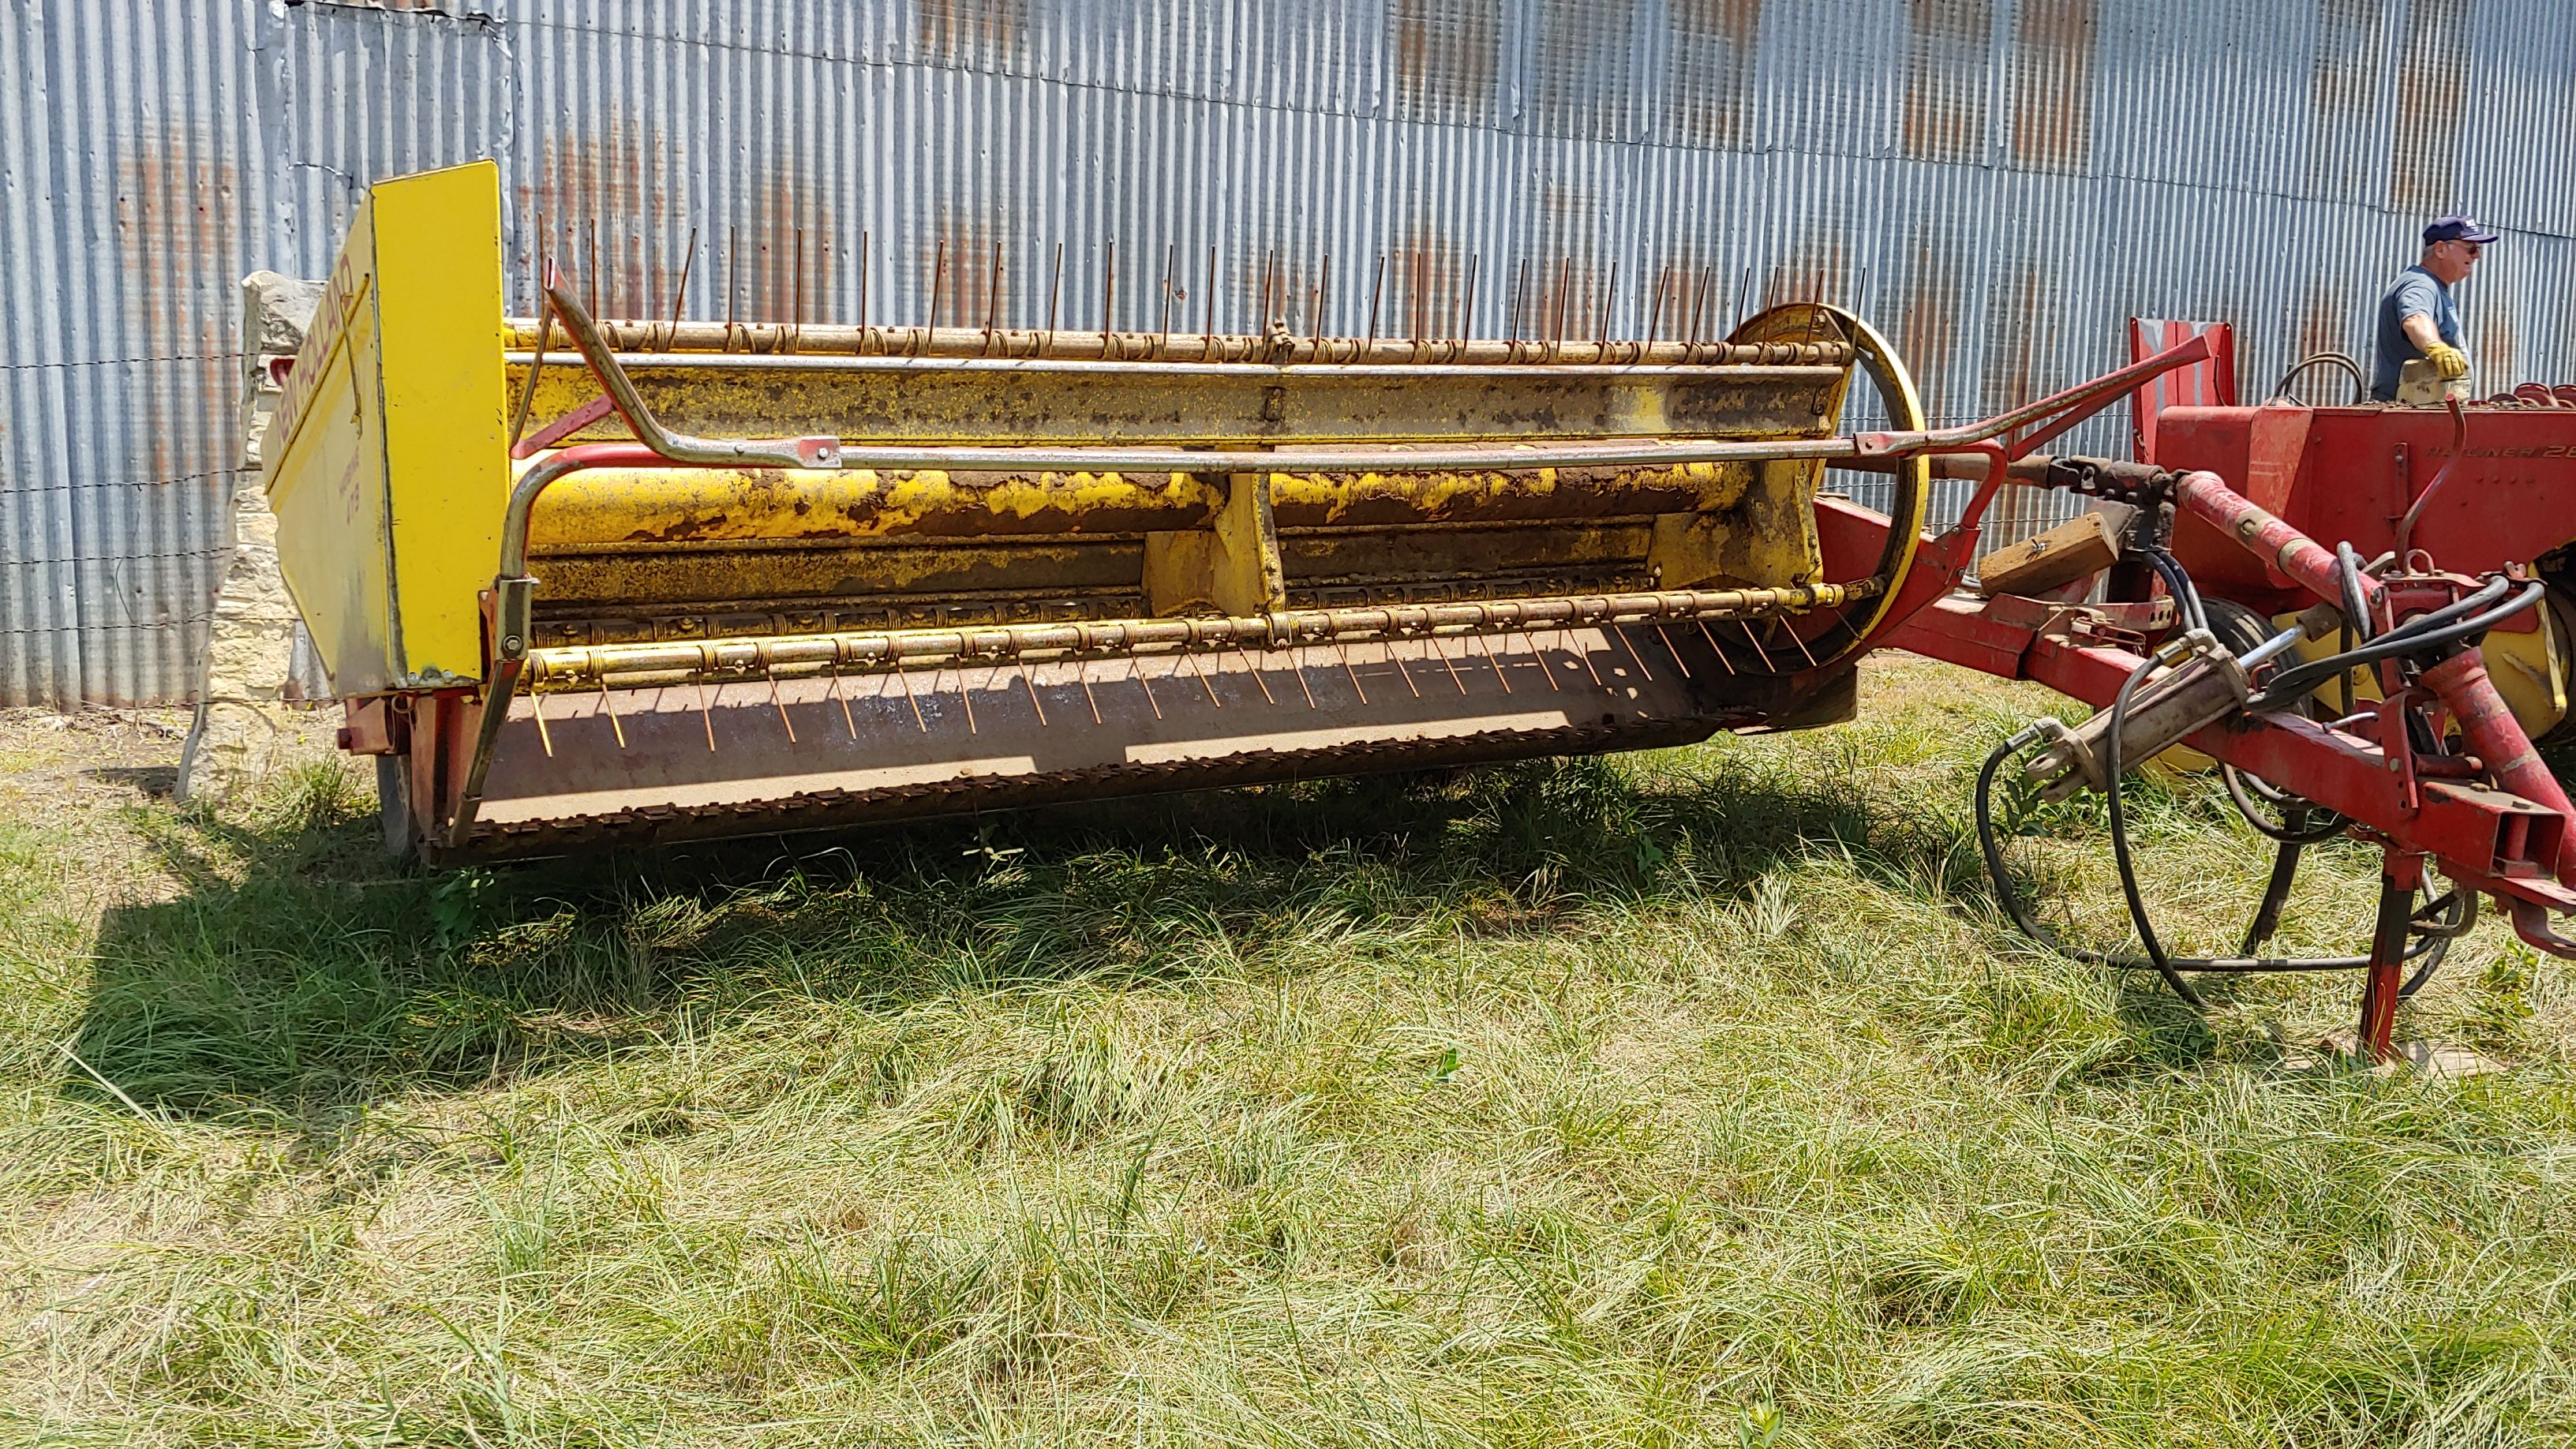 Item 51 in FARM MACHINERY AUCTION gallery